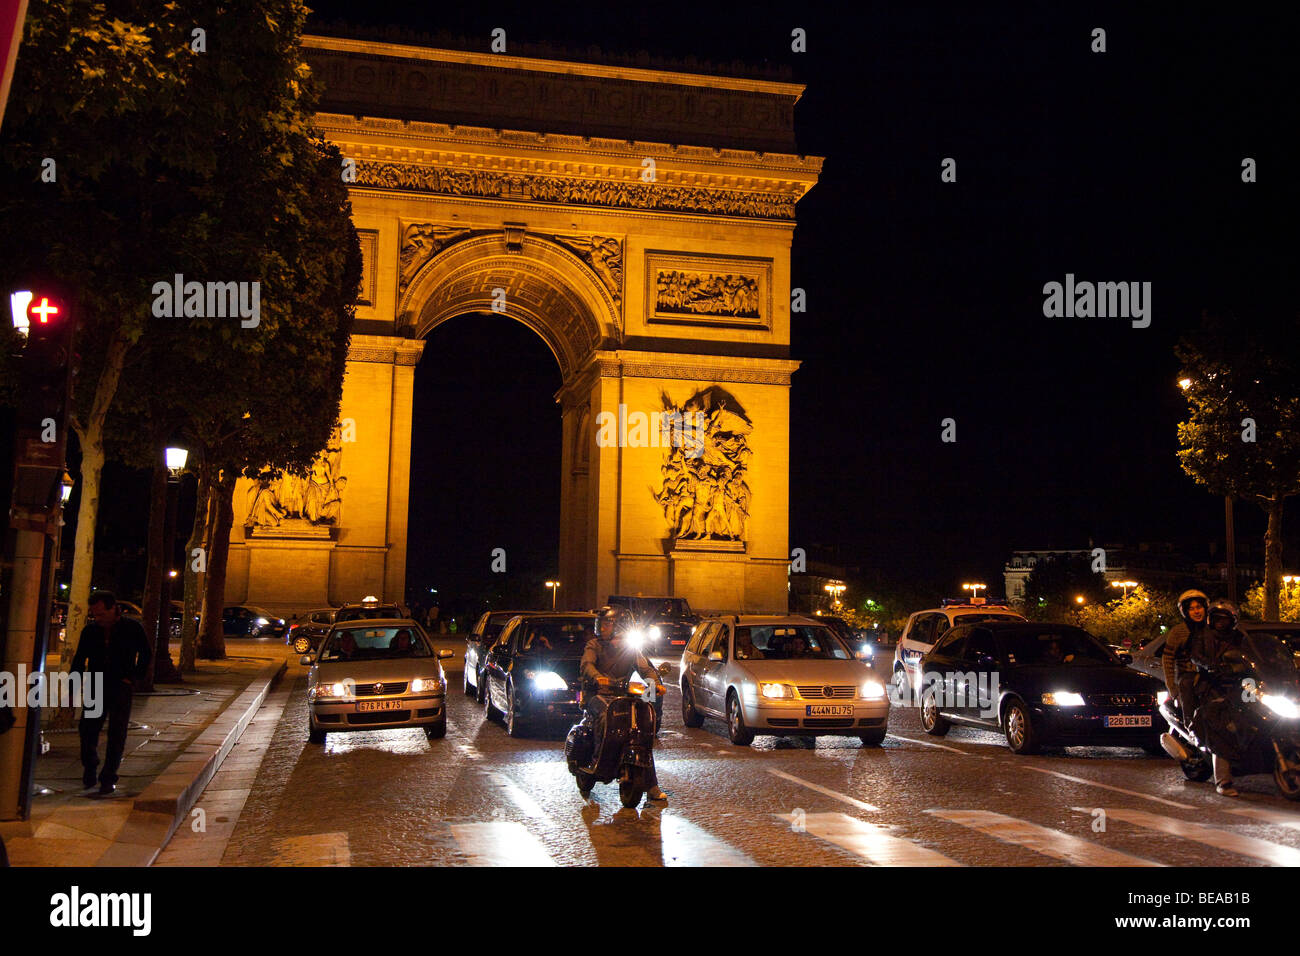 Arc de Triomphe and the Champs Elysee at night in Paris. Stock Photo